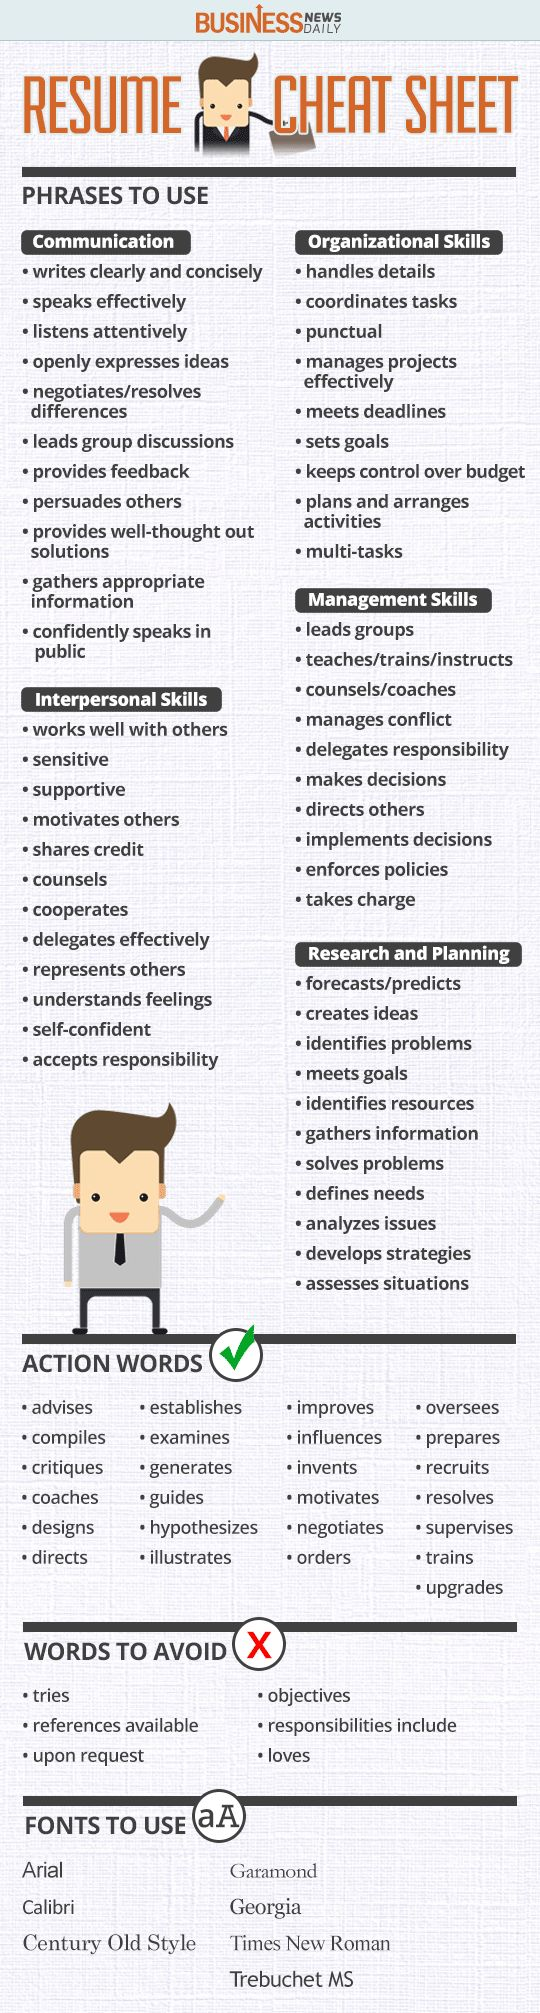 Opposenewapstandardsus  Gorgeous  Ideas About Resume On Pinterest  Cv Format Resume Cv And  With Foxy Resume Cheat Sheet Infographic Andrews Almost Done With A Complete Unit On Employment Which With Divine Software Tester Resume Also Example Student Resume In Addition How To Write A Resume And Cover Letter And Inventory Control Resume As Well As Soft Skills For Resume Additionally Esthetician Resume Sample From Pinterestcom With Opposenewapstandardsus  Foxy  Ideas About Resume On Pinterest  Cv Format Resume Cv And  With Divine Resume Cheat Sheet Infographic Andrews Almost Done With A Complete Unit On Employment Which And Gorgeous Software Tester Resume Also Example Student Resume In Addition How To Write A Resume And Cover Letter From Pinterestcom